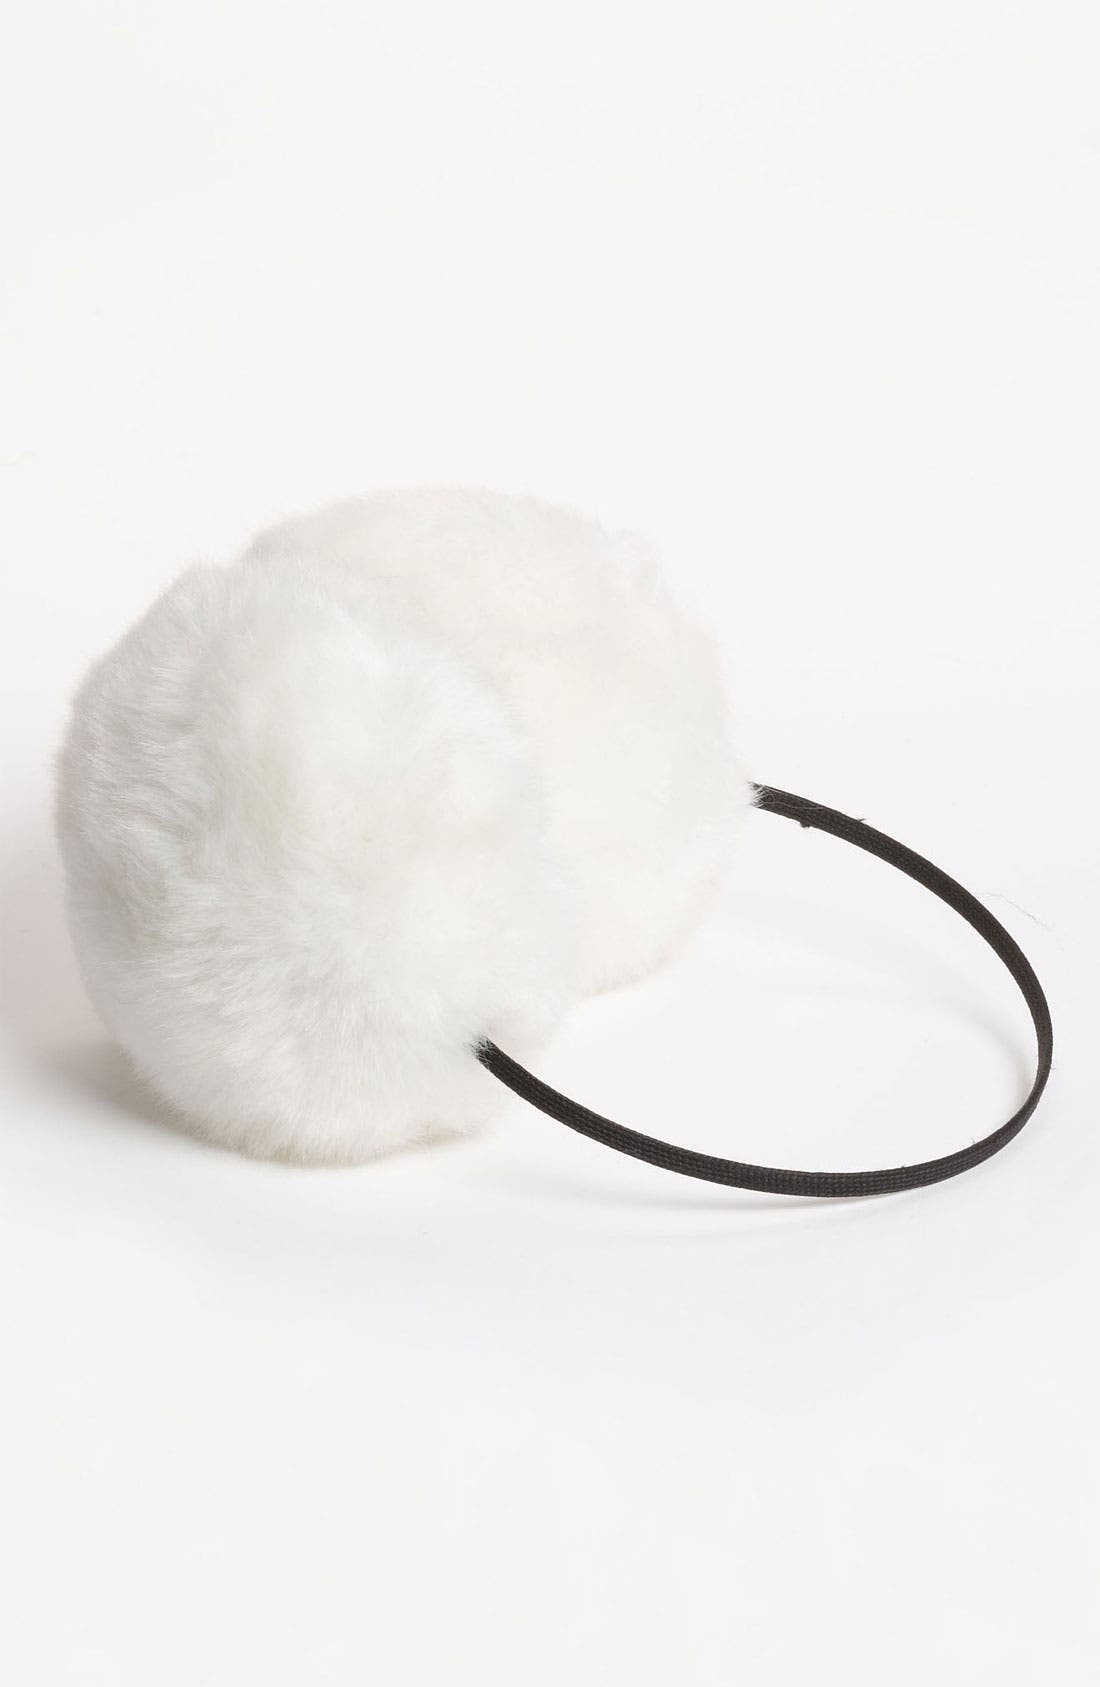 Alternate Image 1 Selected - The Accessory Collective Earmuffs (Girls)